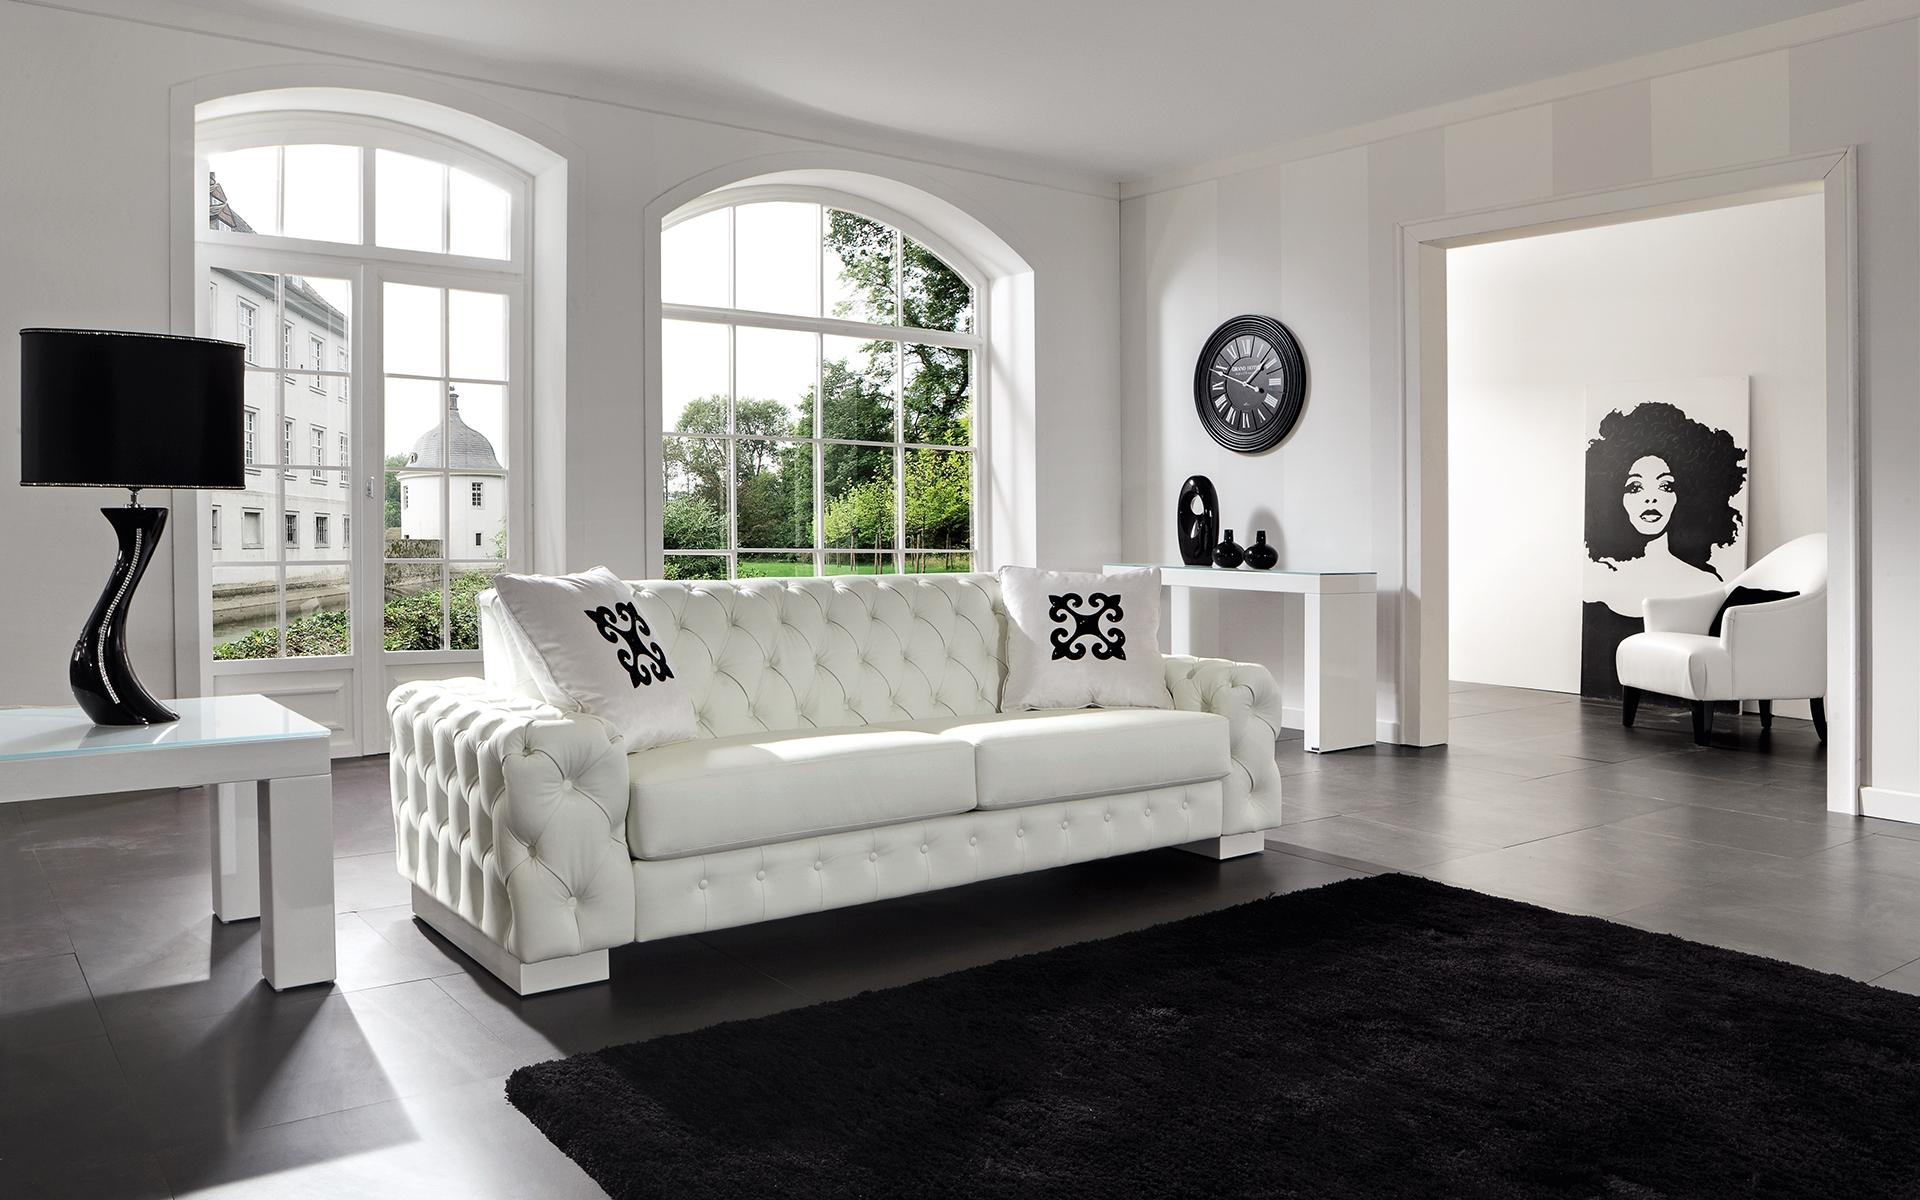 Chesterfield Sofa Baltimore Finkeldei Polsterm Belmanufaktur